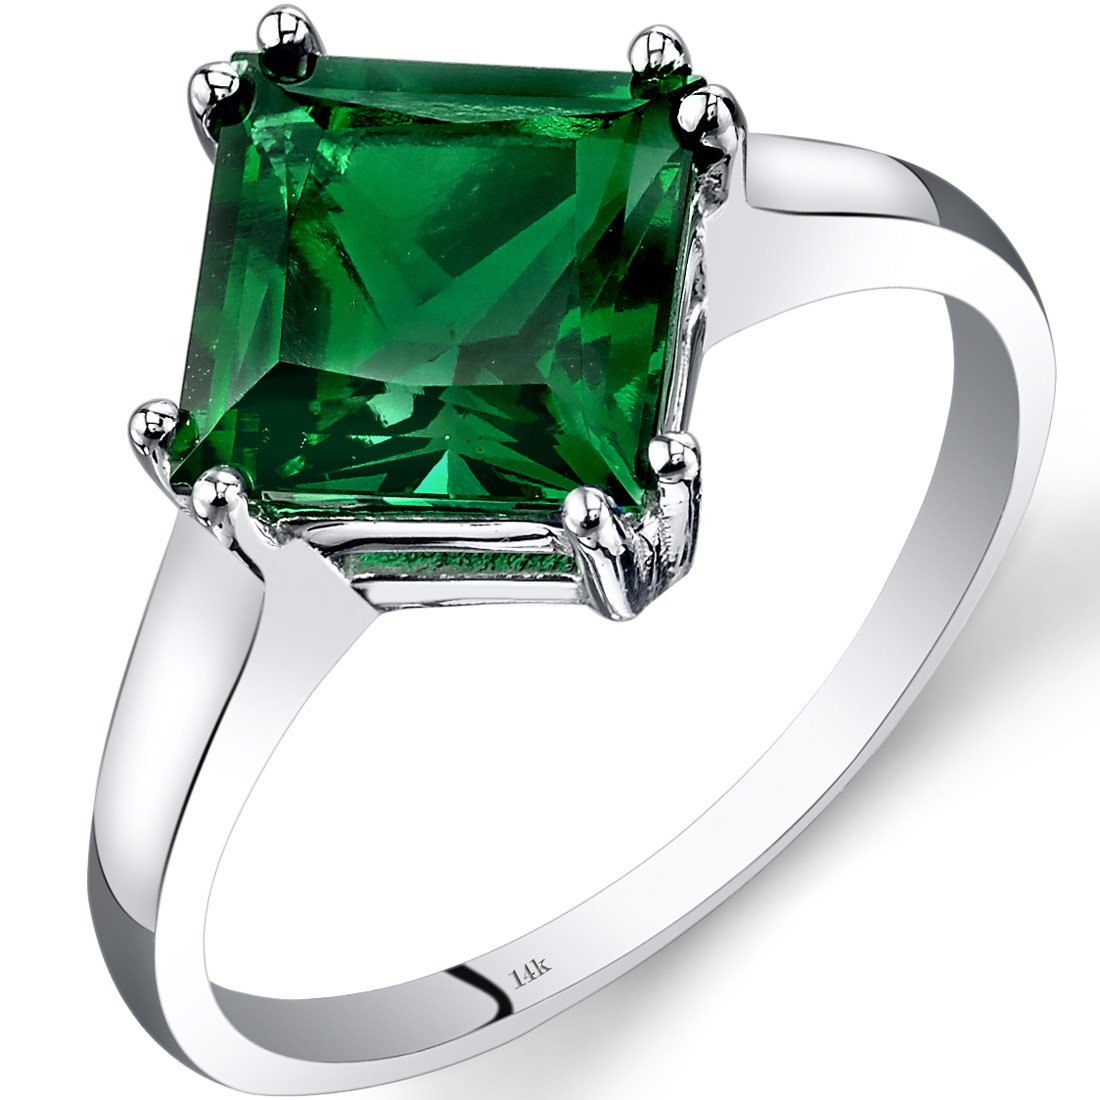 14K White Gold Created Emerald Princess Cut Ring 2.00 Carats Size 9